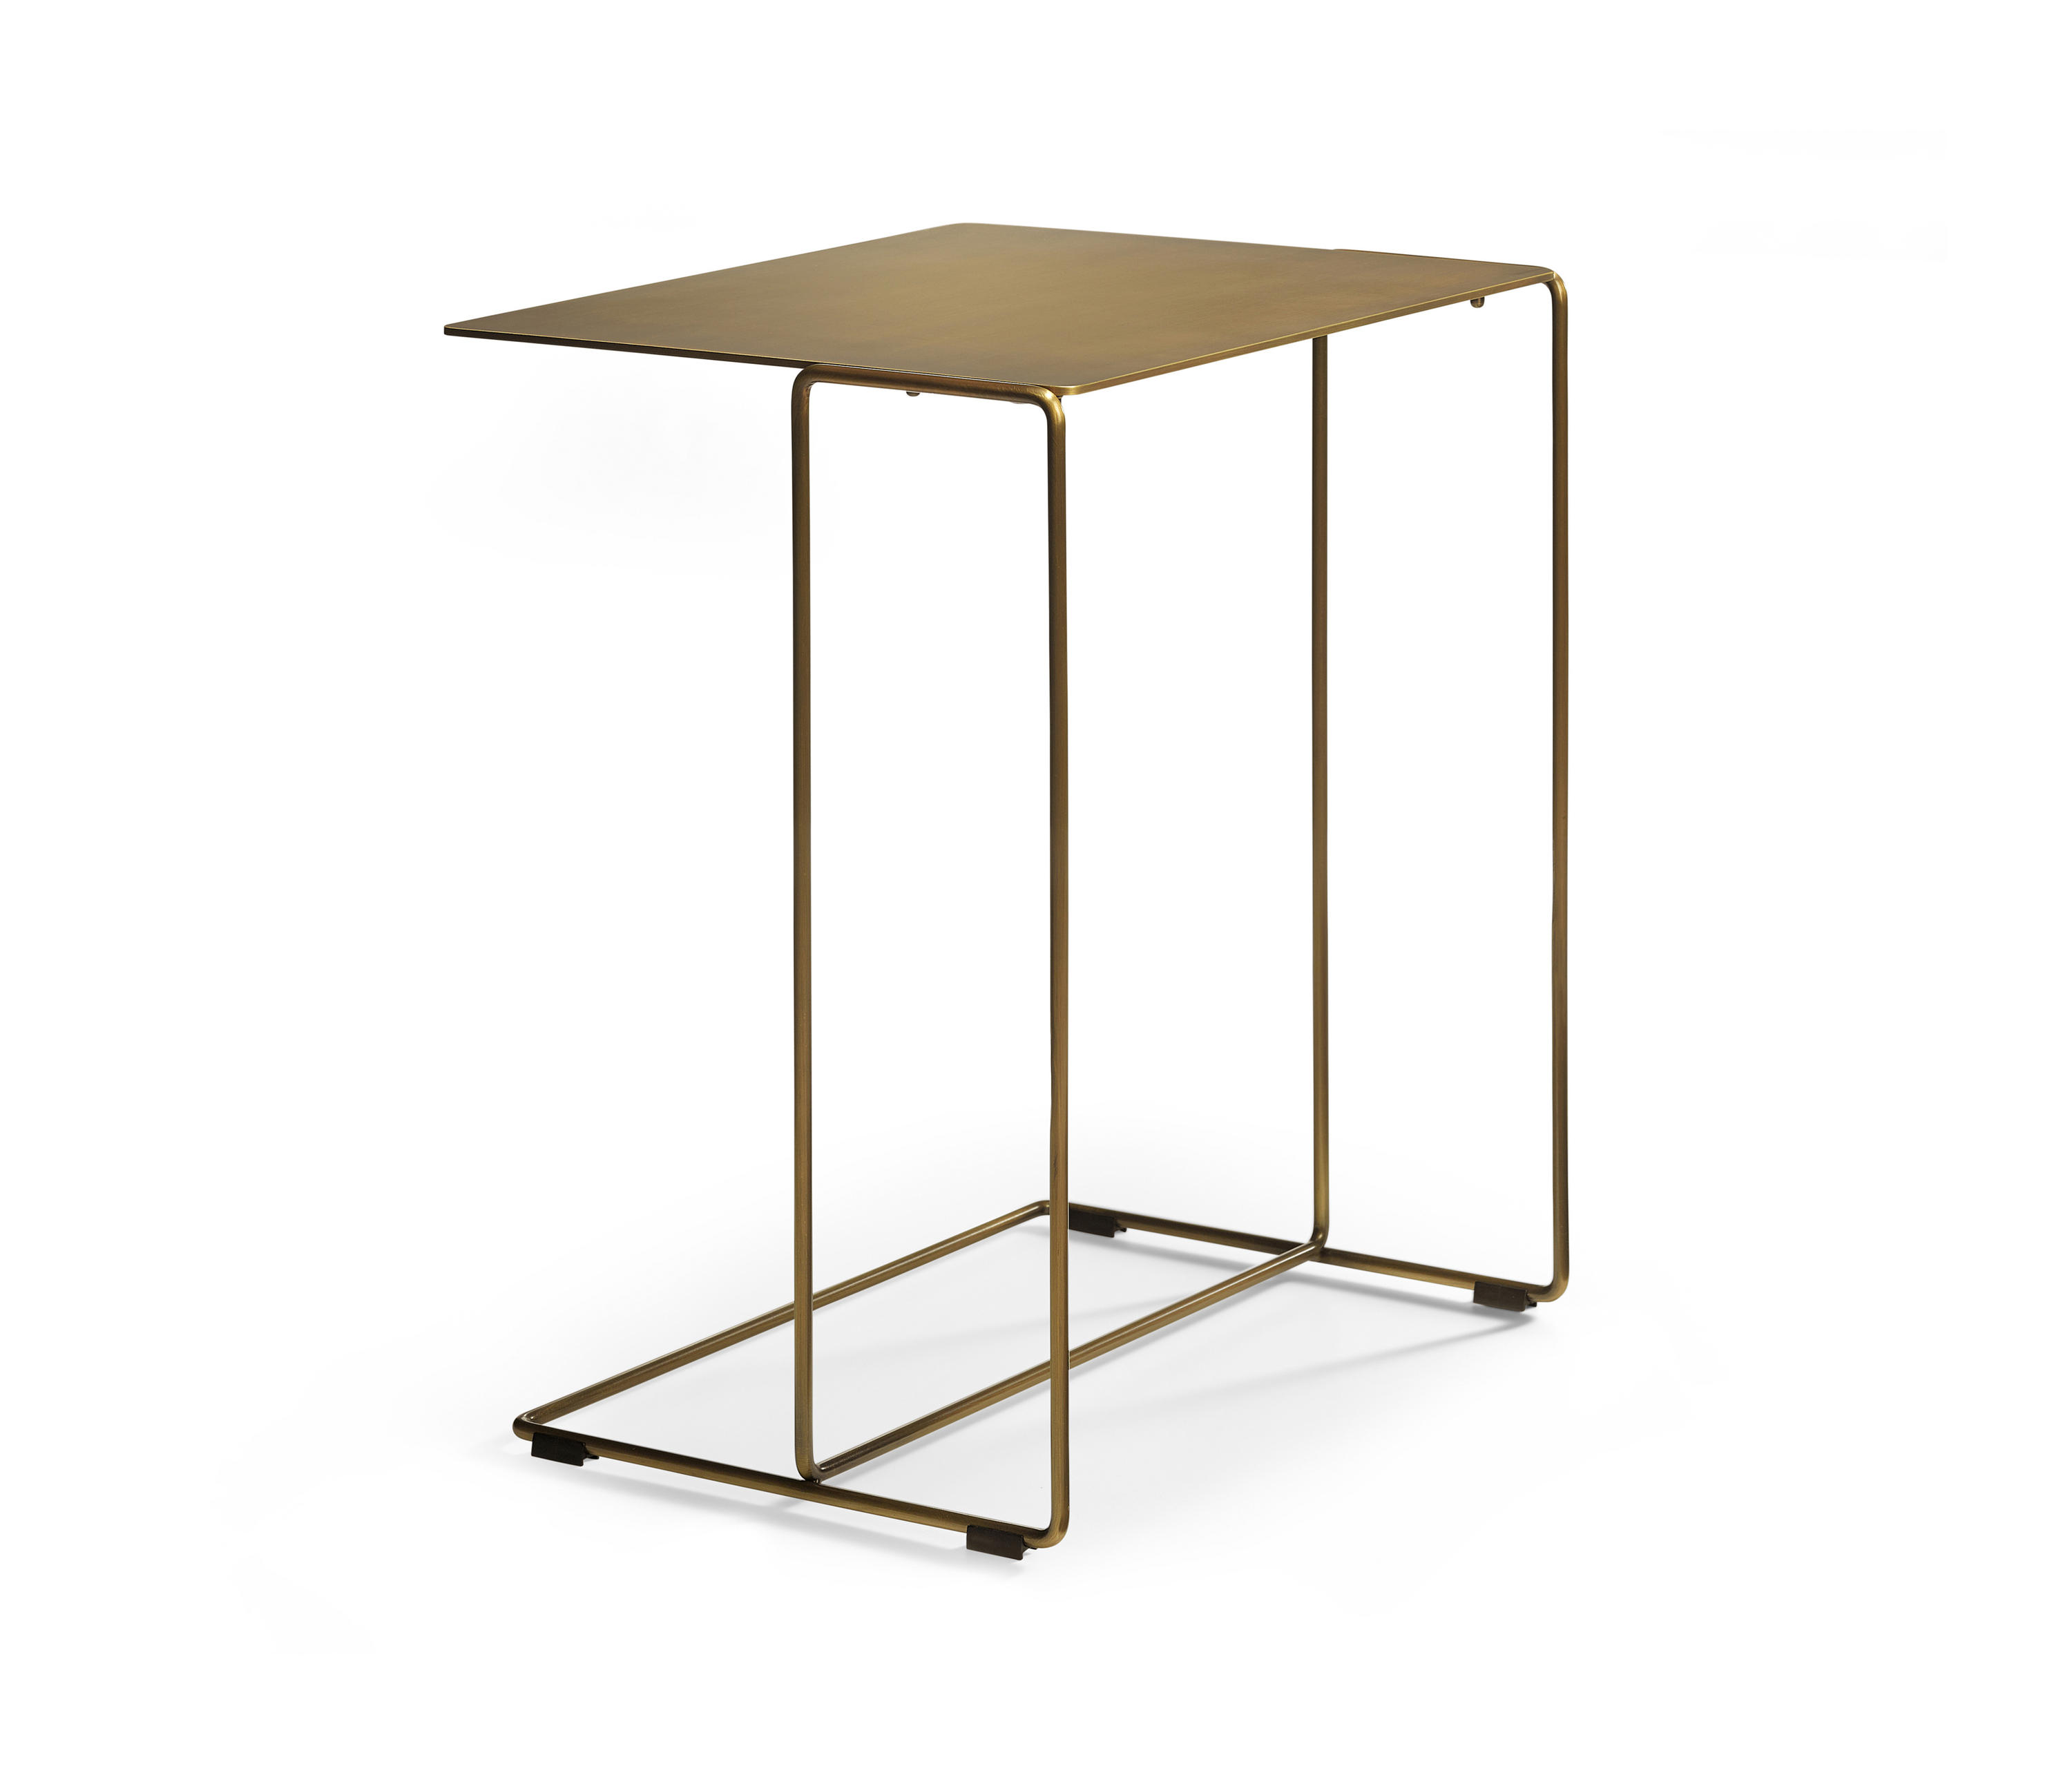 oki occasional table side tables from walter knoll. Black Bedroom Furniture Sets. Home Design Ideas